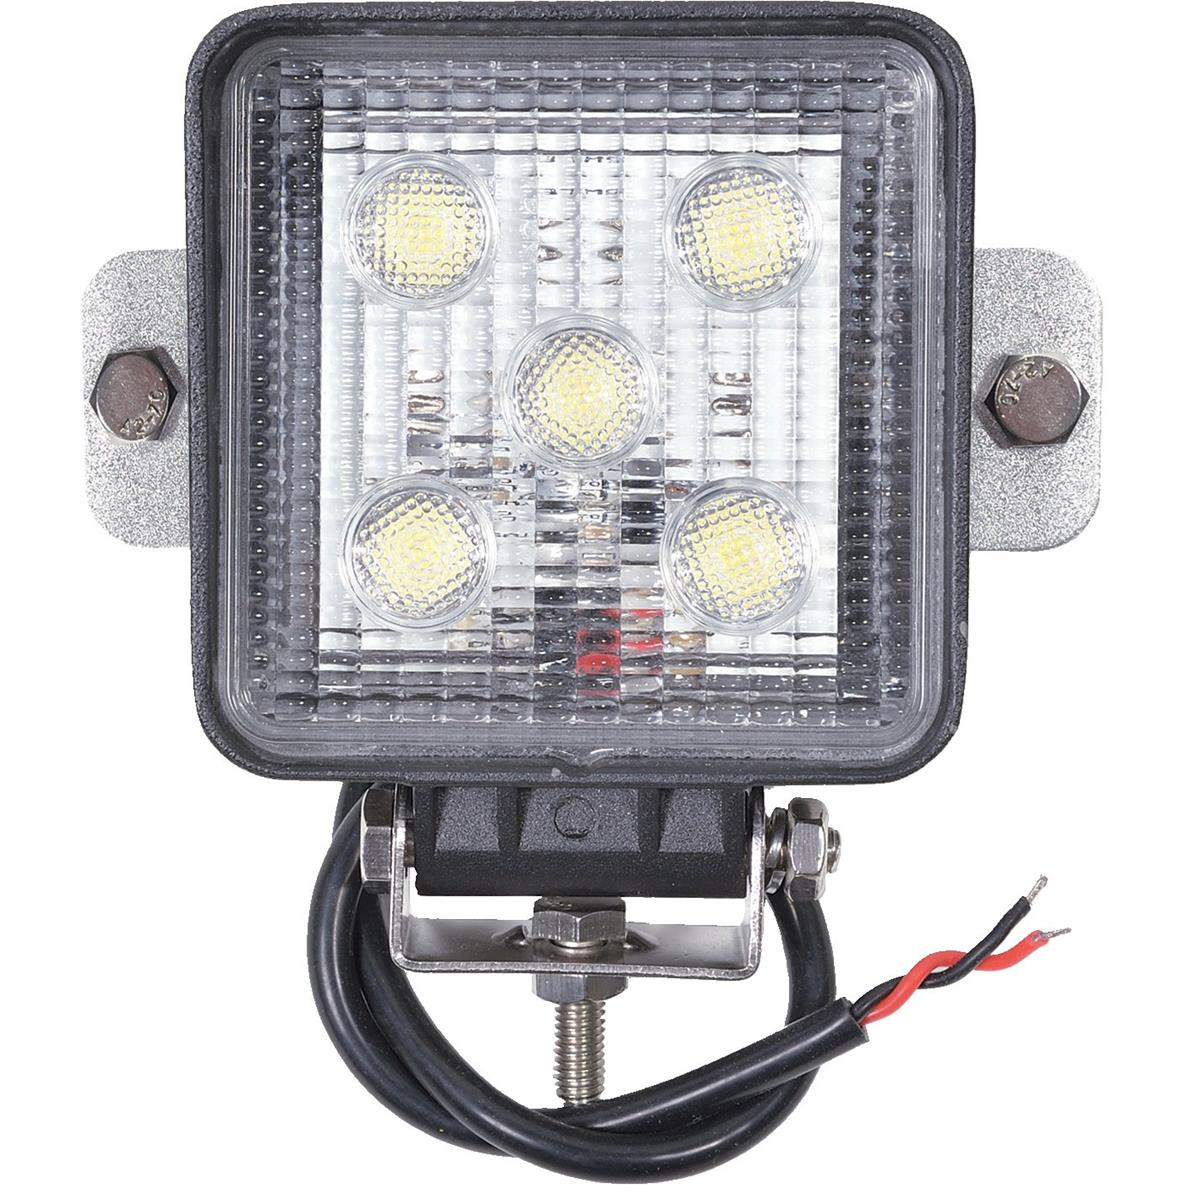 Professional-Grade LED Worklight, 1,200-lumen output